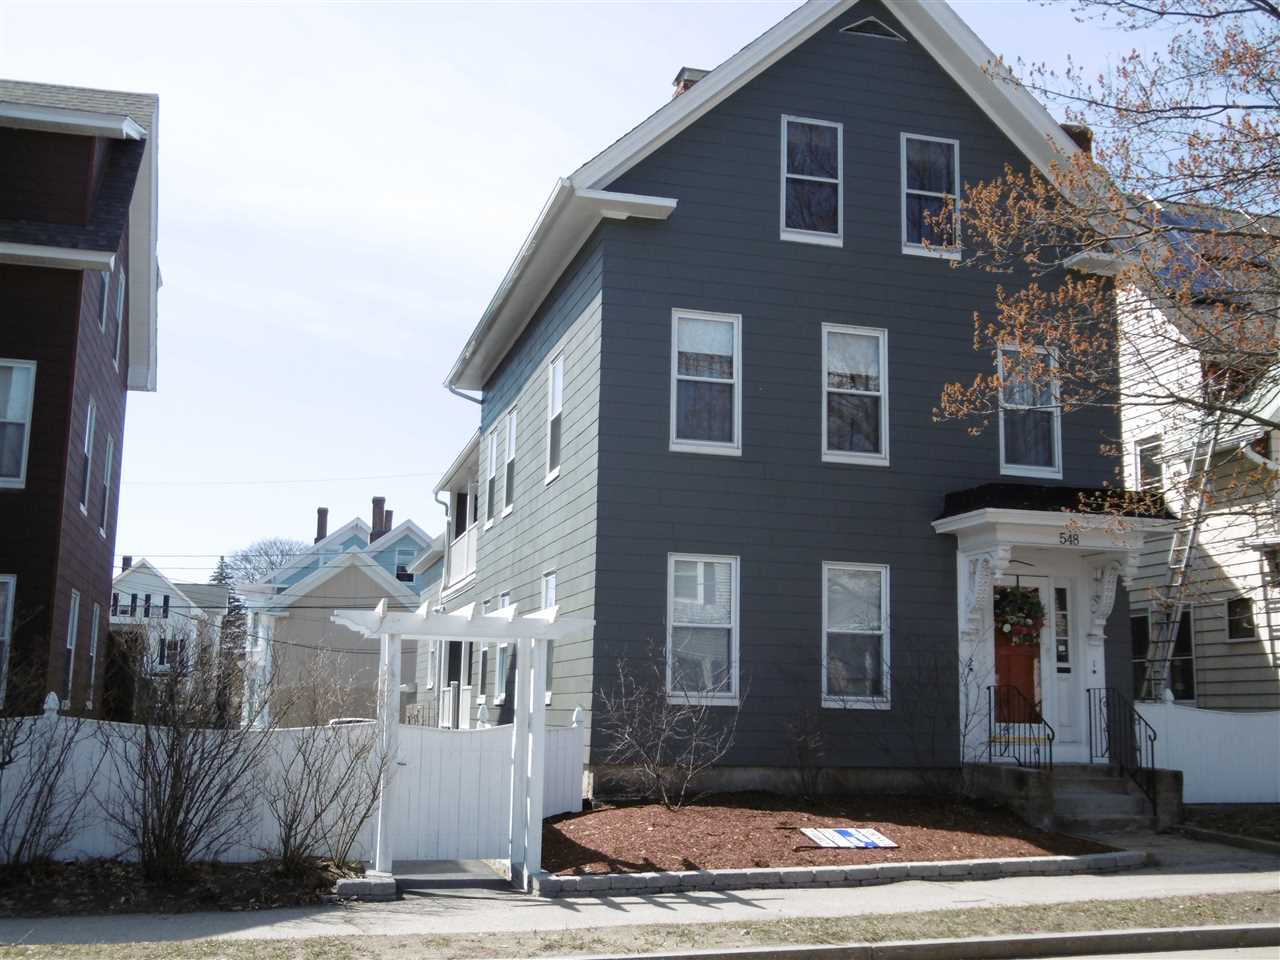 image of Manchester NH  2 Unit Multi Family | sq.ft. 2152